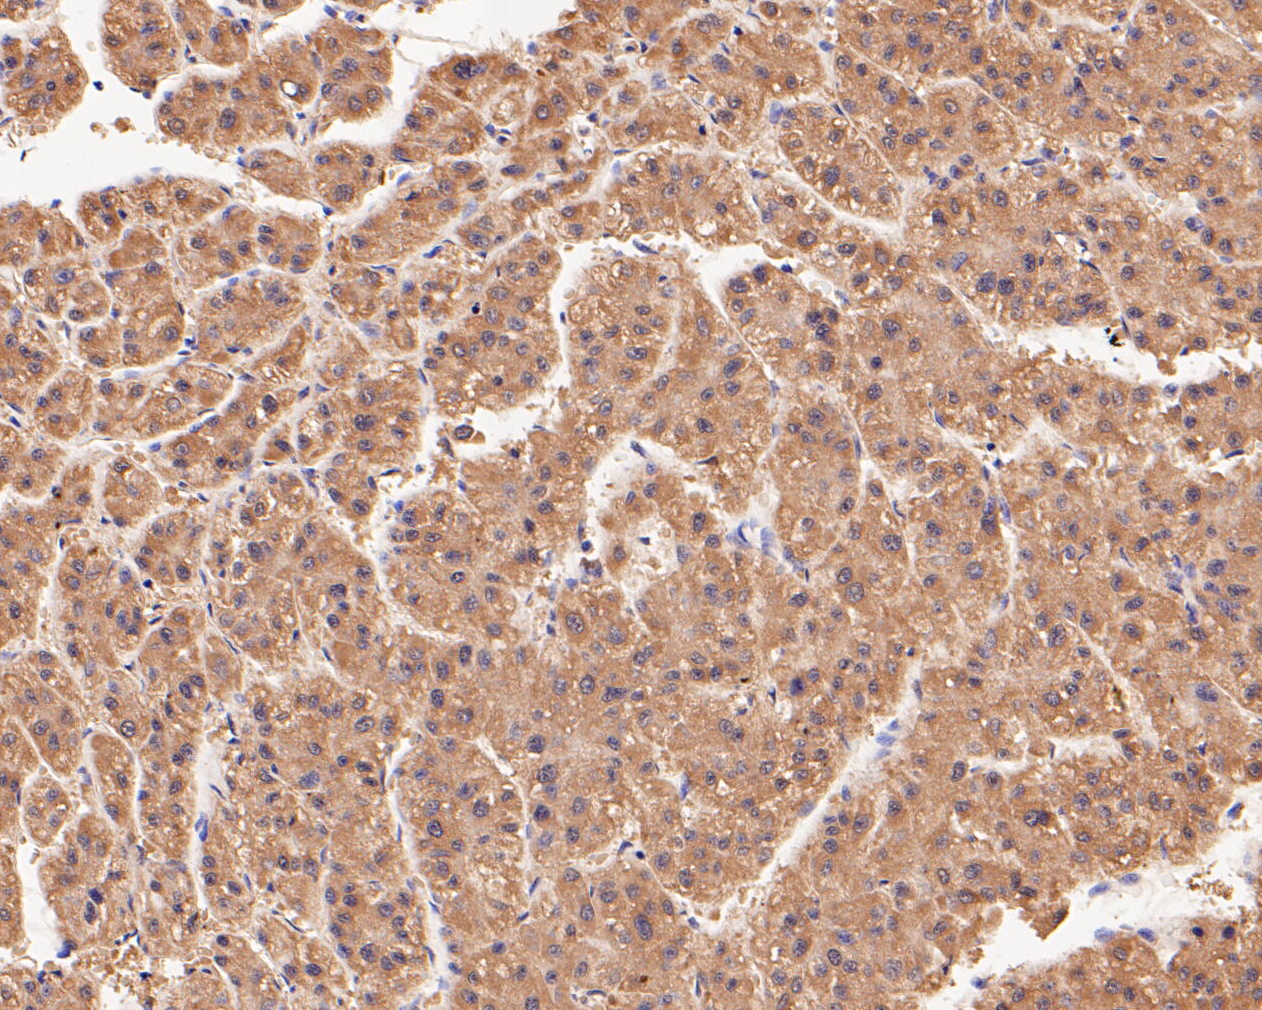 Immunohistochemical analysis of paraffin-embedded human liver tissue using anti-Connexin-26 antibody. The section was pre-treated using heat mediated antigen retrieval with Tris-EDTA buffer (pH 8.0-8.4) for 20 minutes.The tissues were blocked in 5% BSA for 30 minutes at room temperature, washed with ddH2O and PBS, and then probed with the primary antibody (ER1902-42, 1/200) for 30 minutes at room temperature. The detection was performed using an HRP conjugated compact polymer system. DAB was used as the chromogen. Tissues were counterstained with hematoxylin and mounted with DPX.